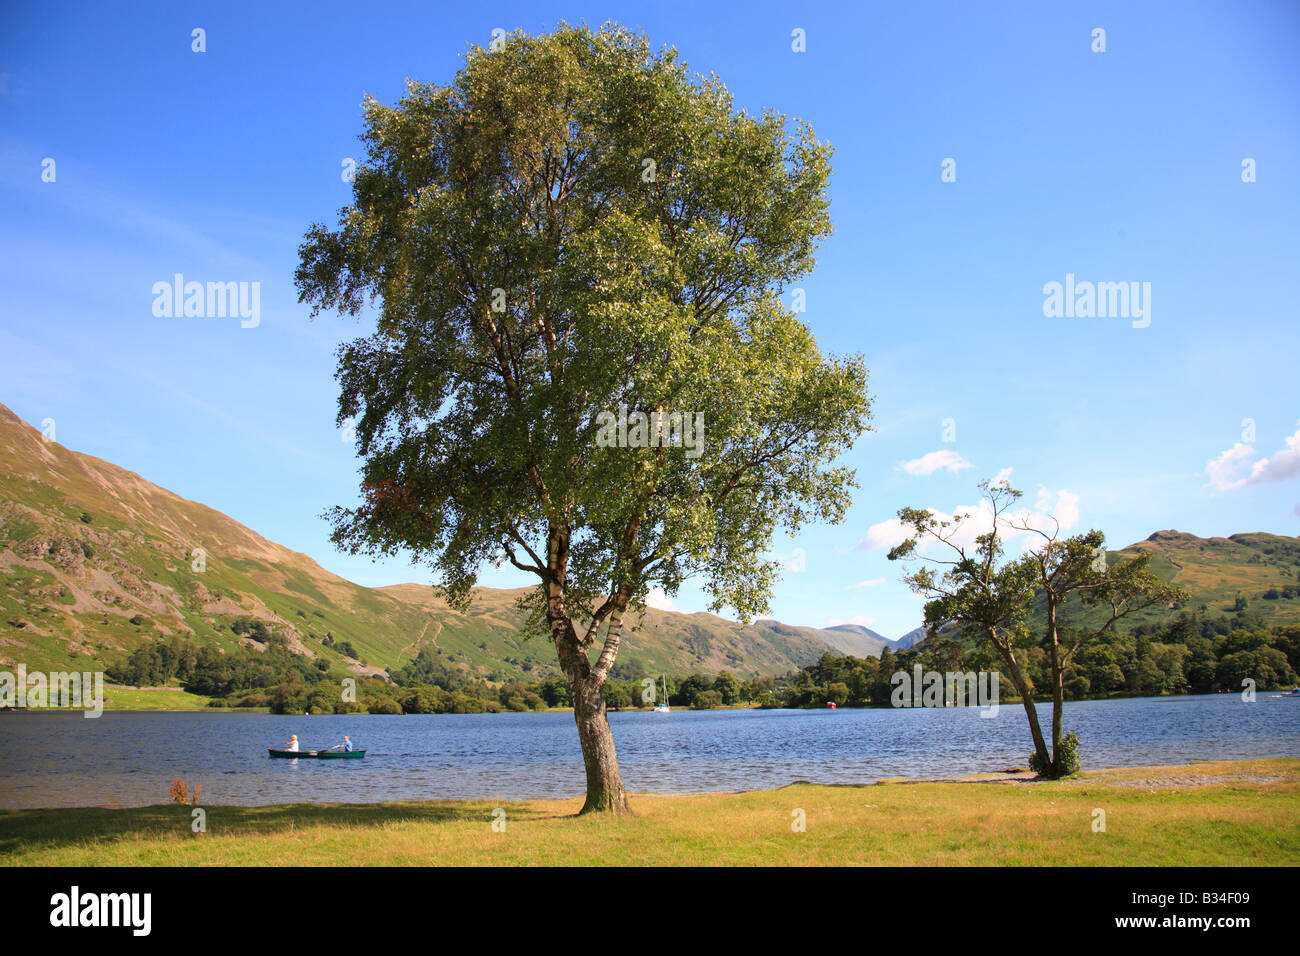 Silver Birch Tree on the shores of a Lake with two people canoing in the distance on a summers day. - Stock Image